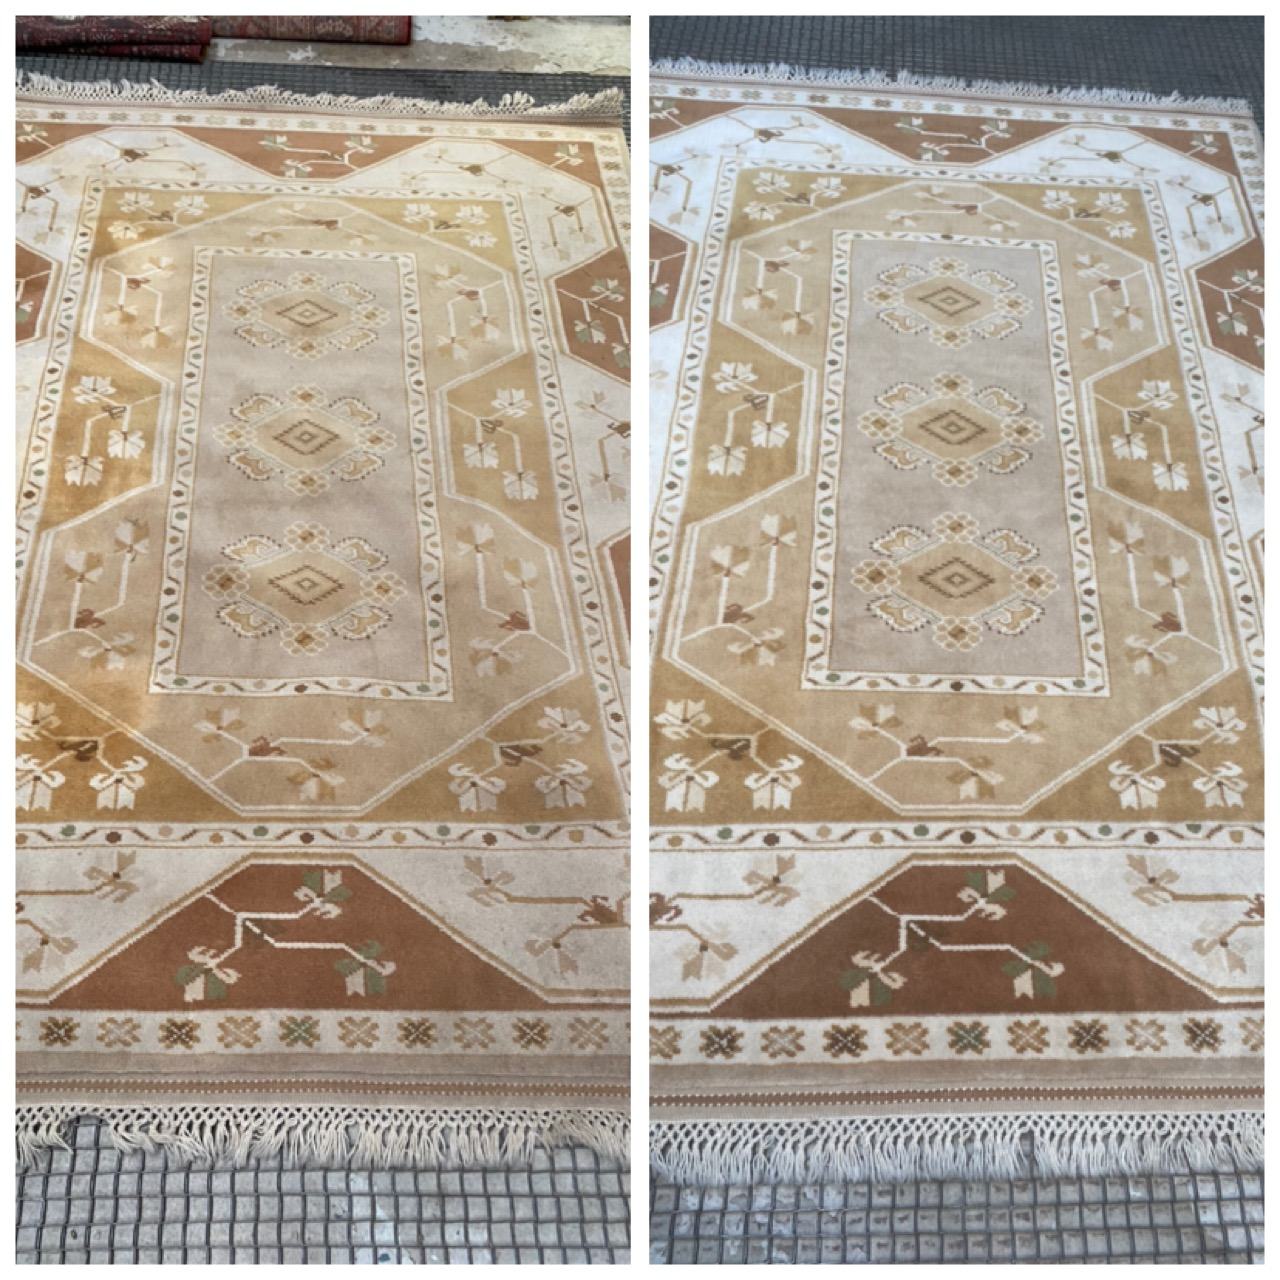 Turkish Milas - Cheshire Rug Cleaning